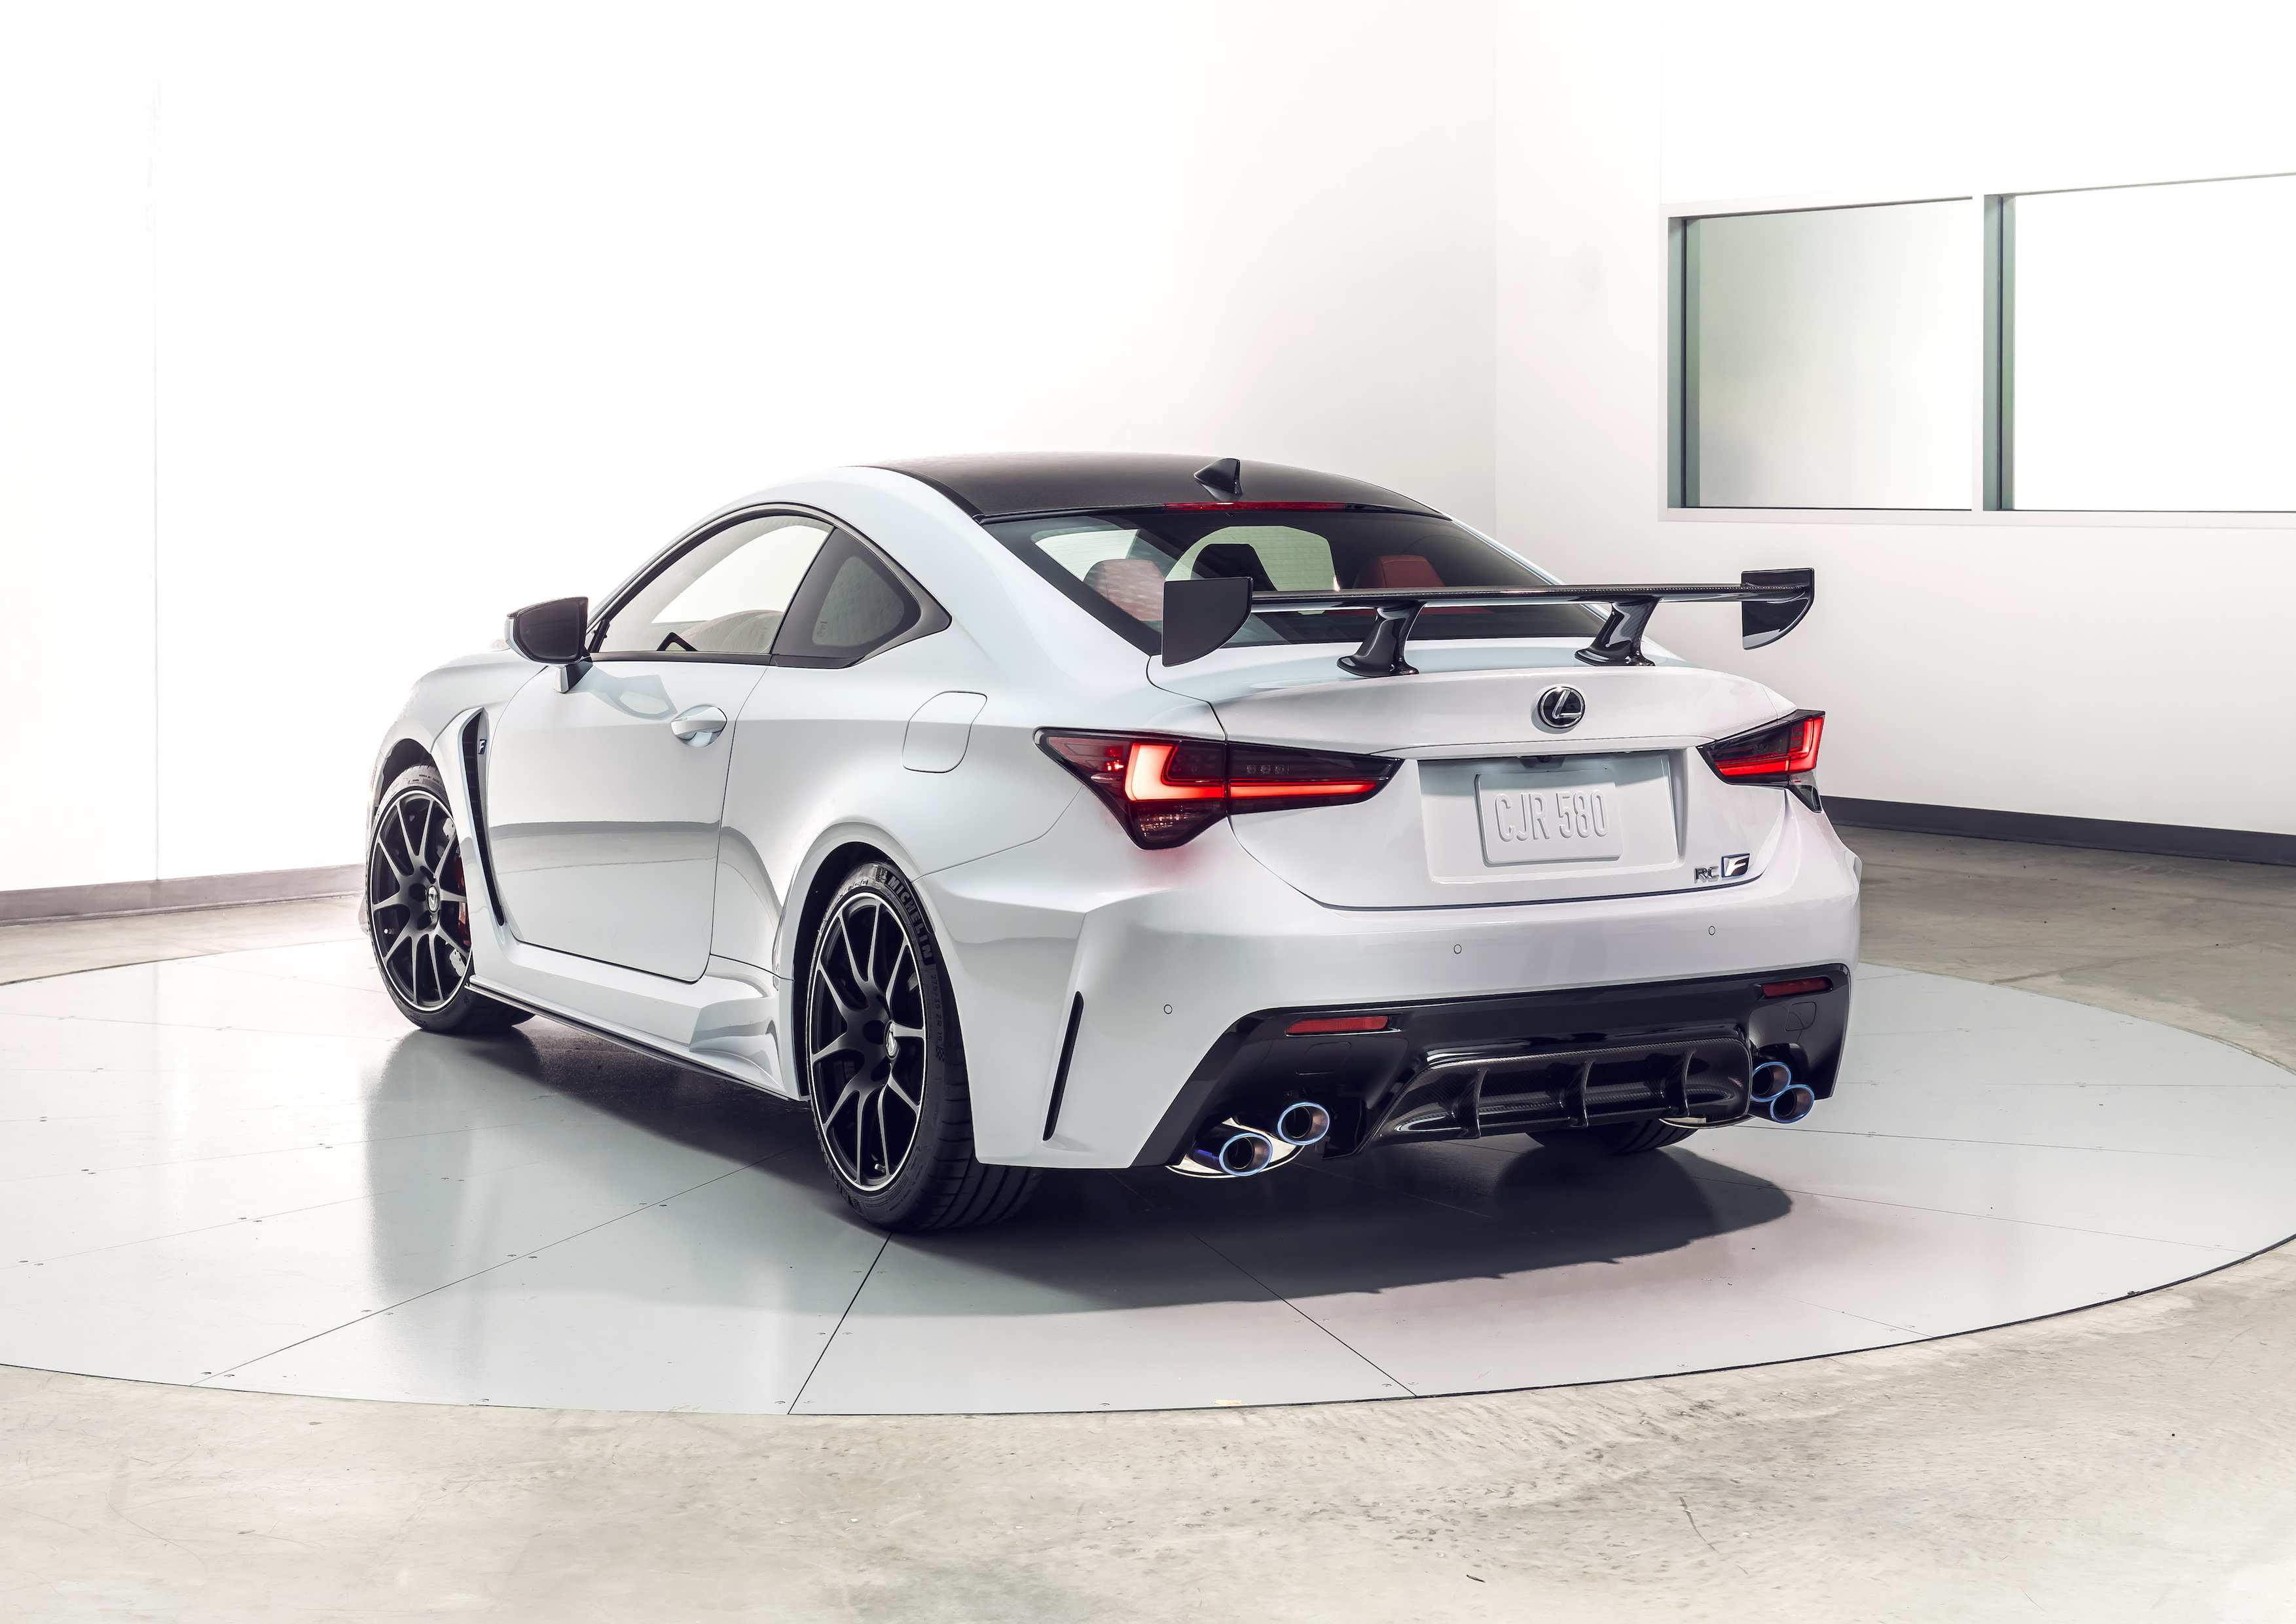 69 Concept of 2020 Lexus Rc F Track Edition Reviews by 2020 Lexus Rc F Track Edition